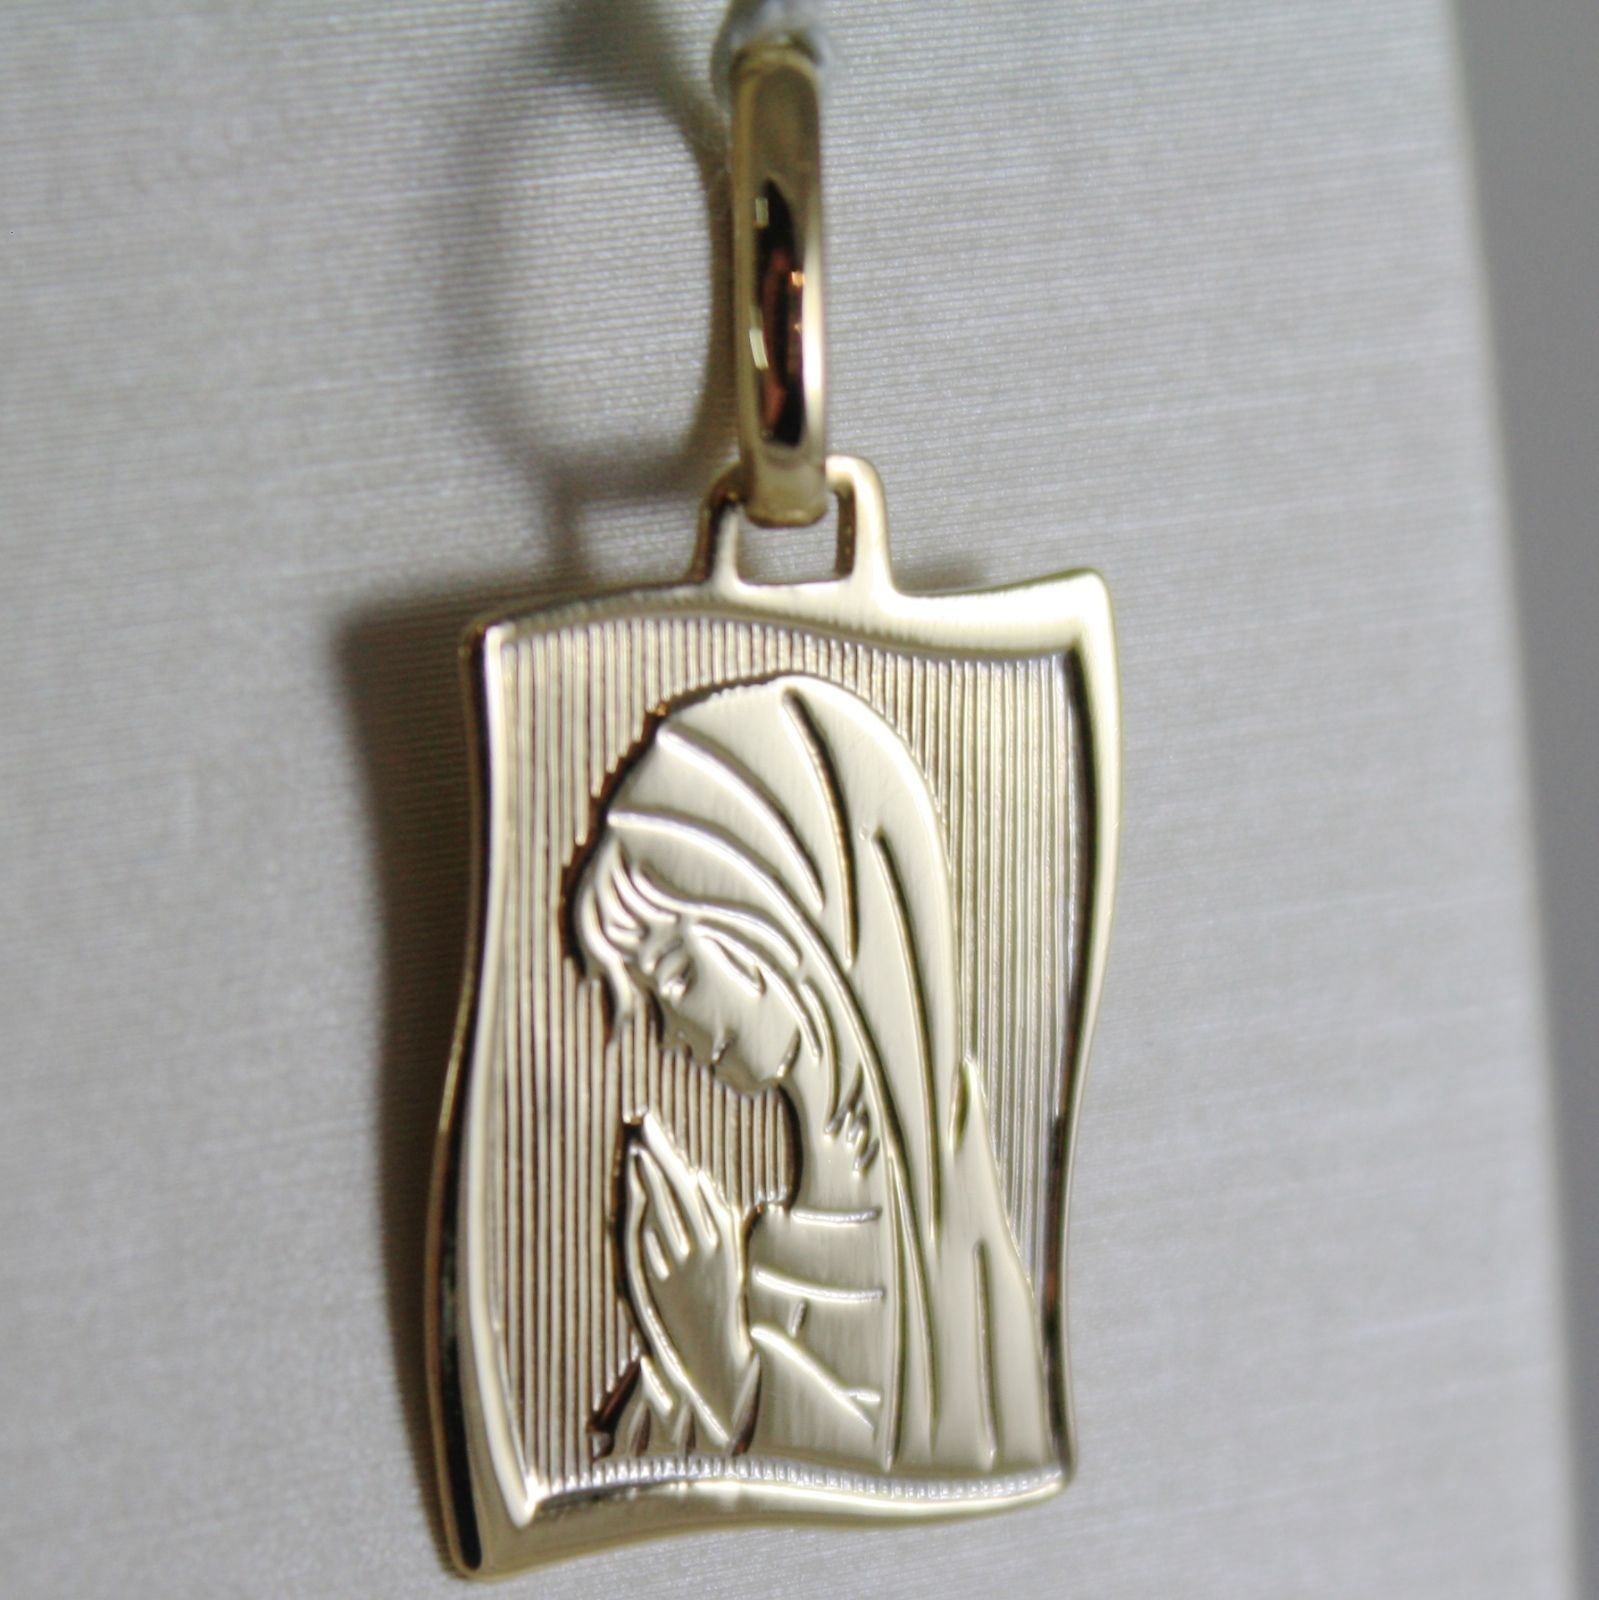 18K YELLOW GOLD SQUARE MEDAL VIRGIN MARY MADONNA ENGRAVABLE MADE IN ITALY